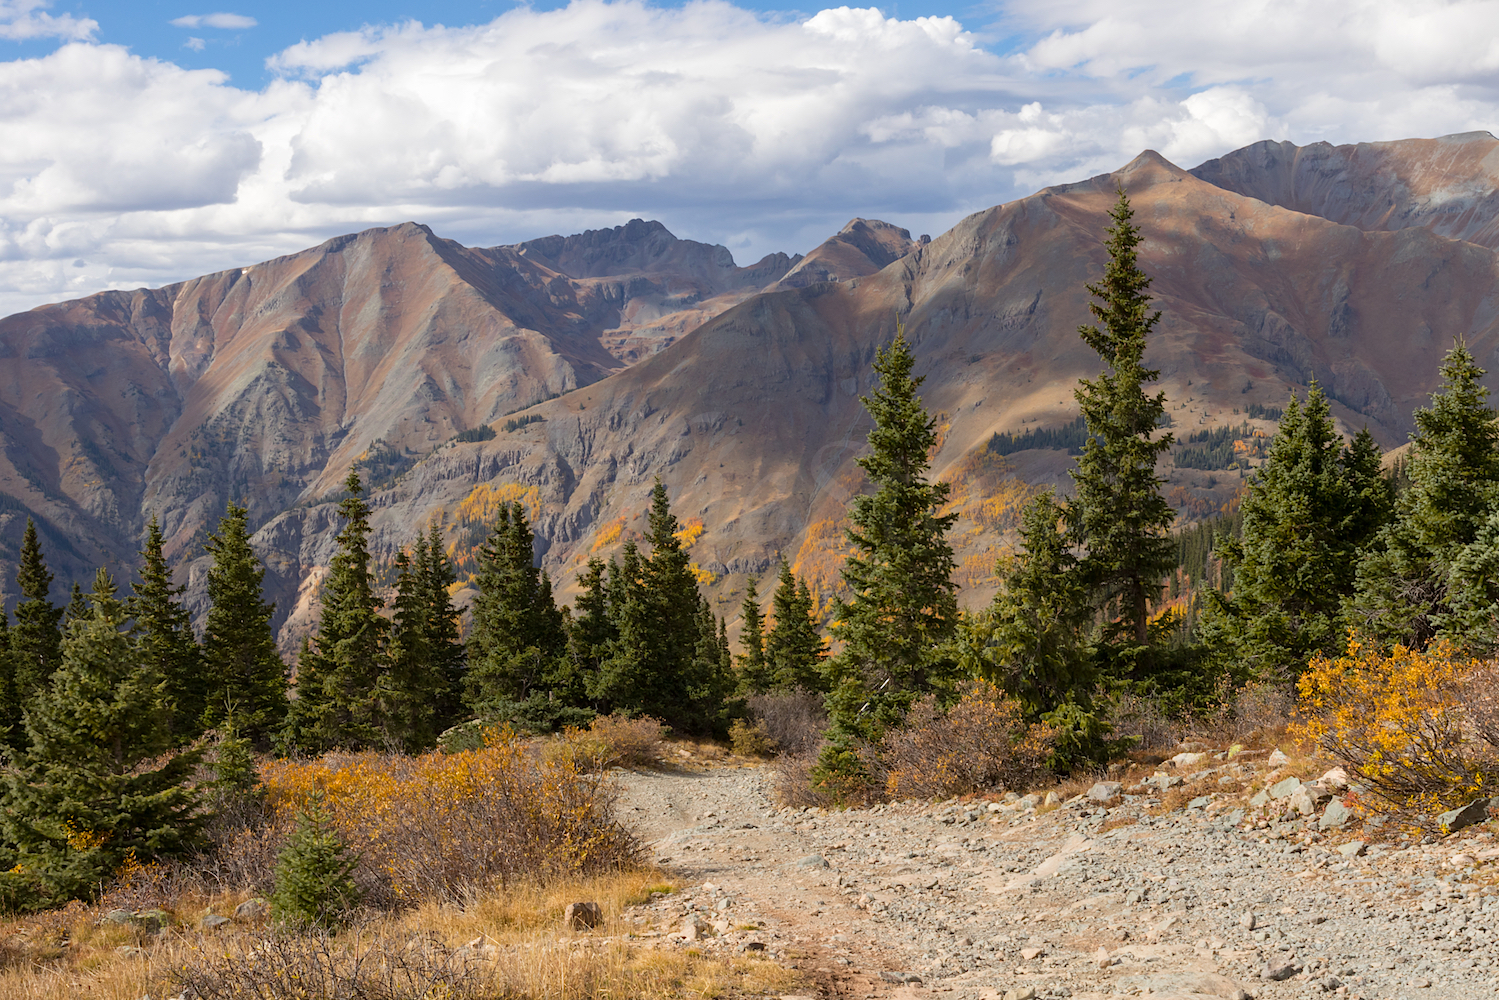 Road to Little Giant Basin, Image # 8783